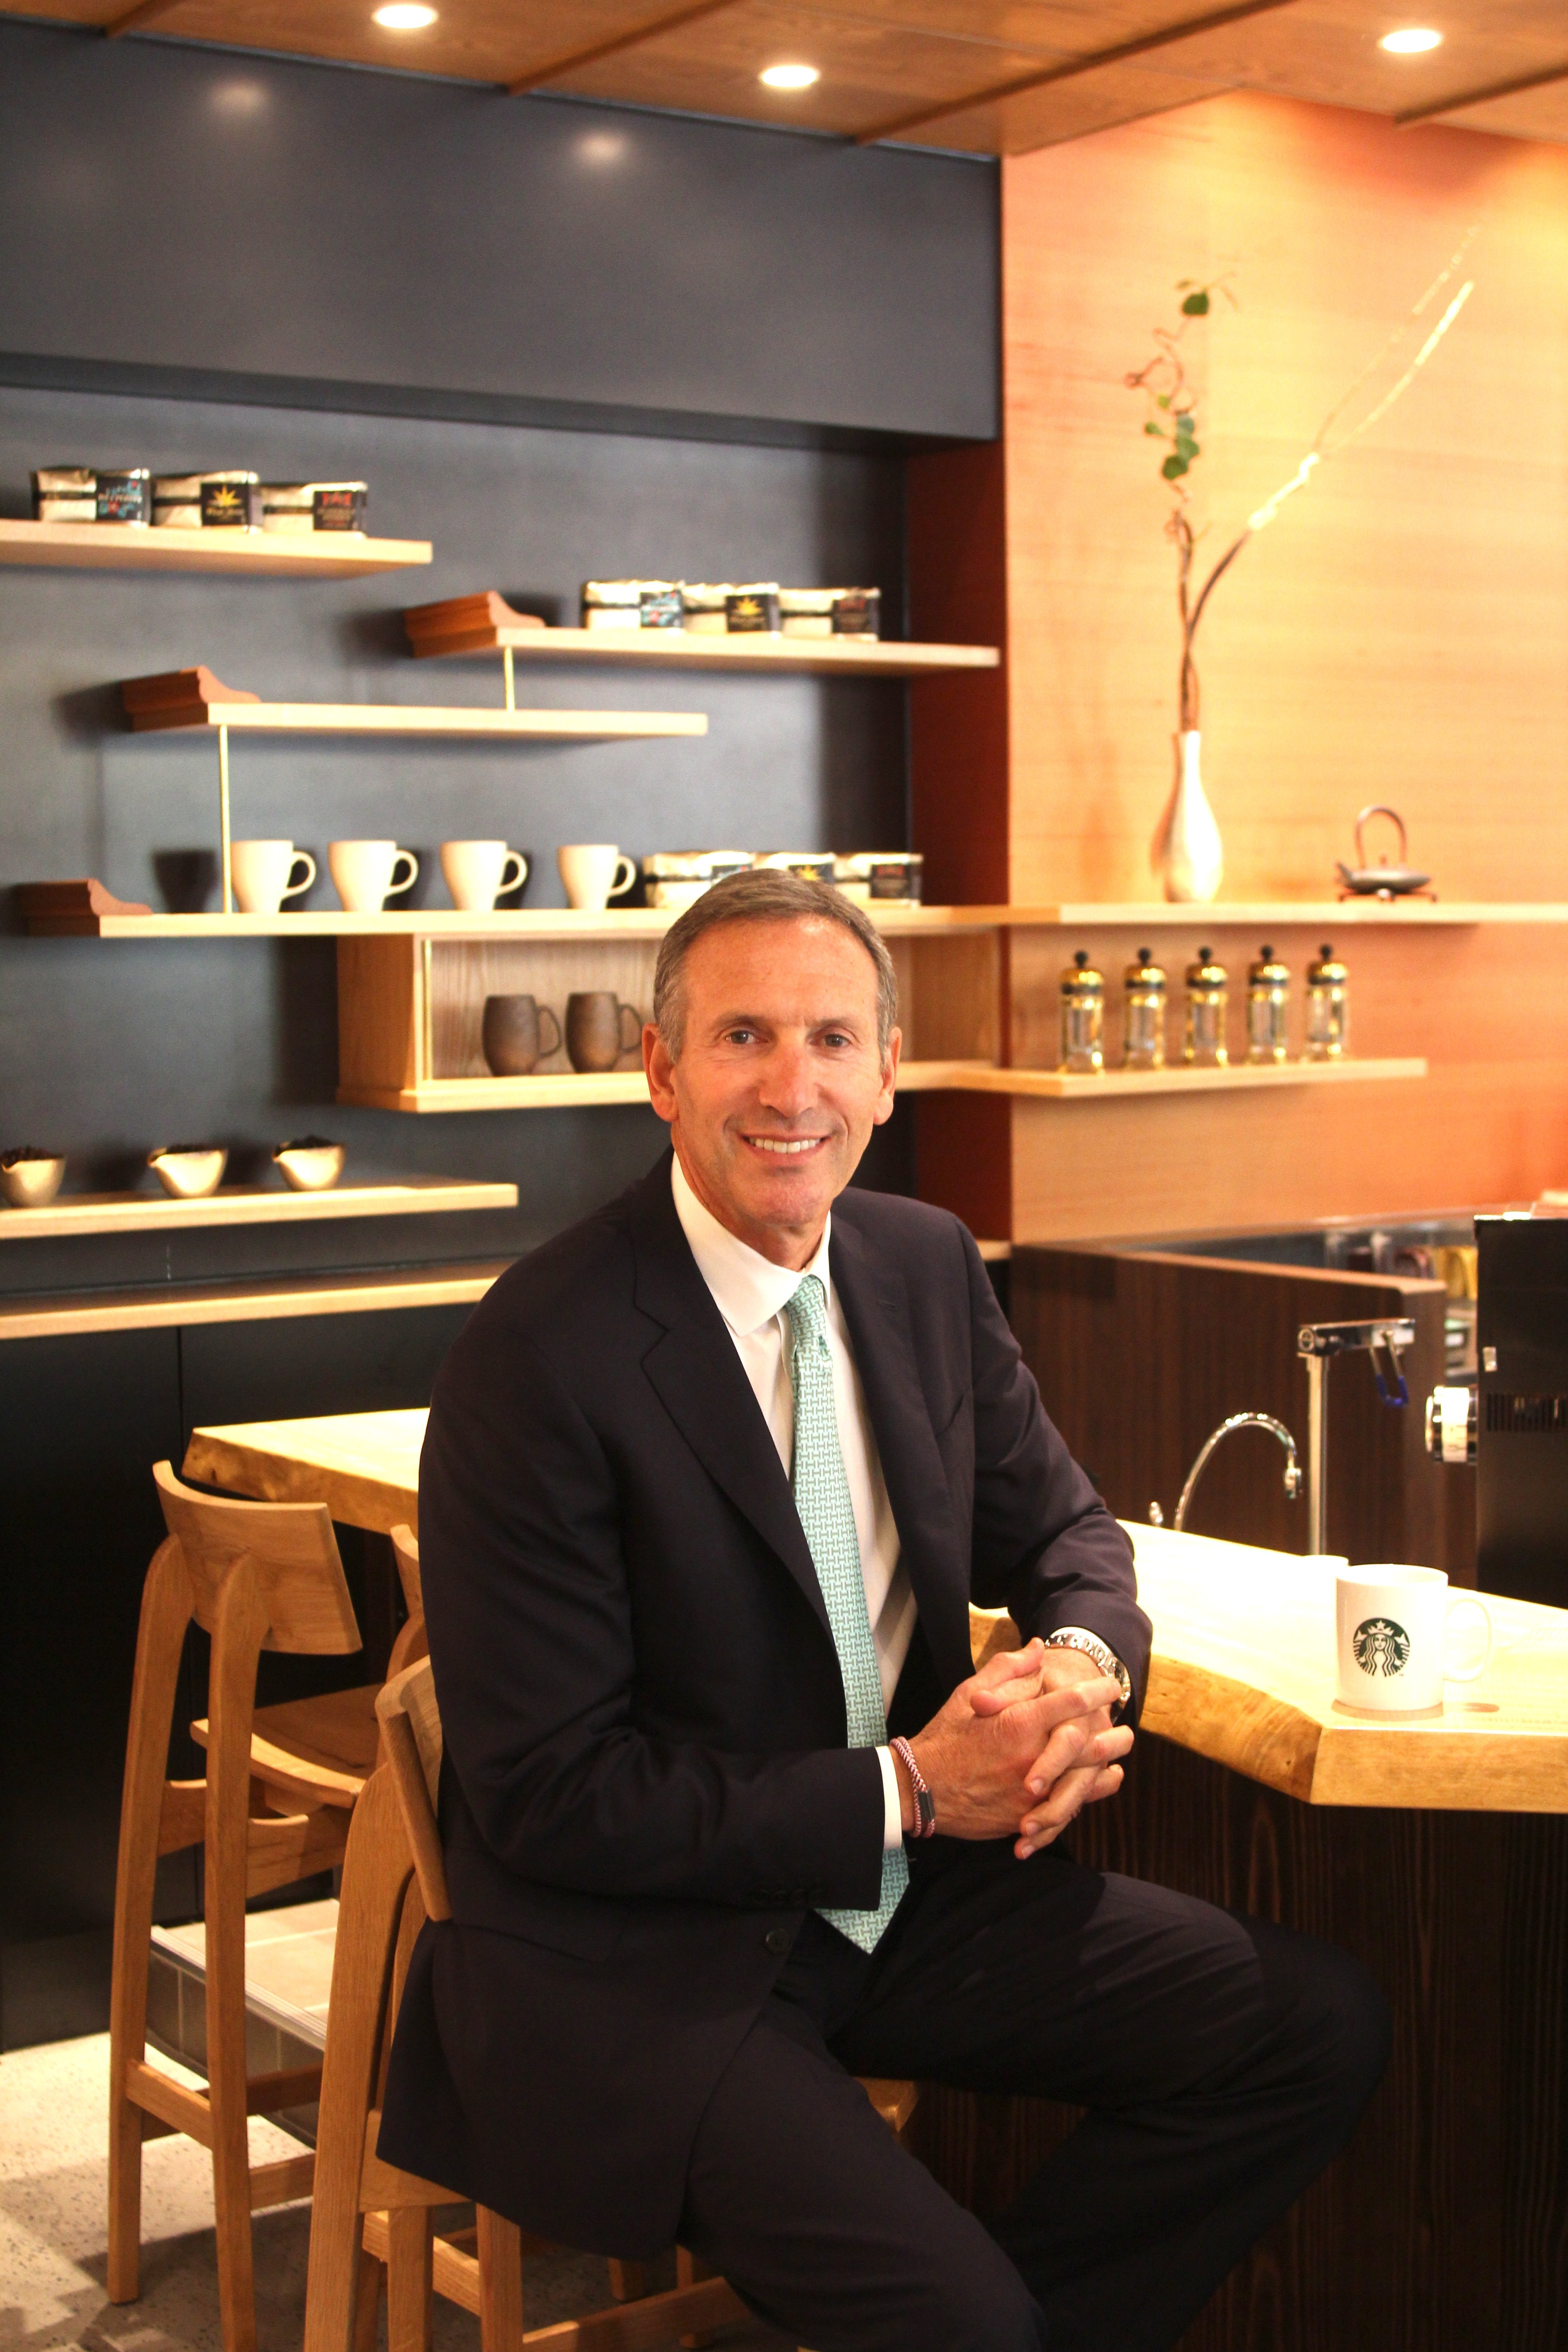 Howard Schultz, Starbucks chairman, president and ceo dedicating new Japan Support Center and Meguro store in Tokyo, Japan as company approaches 1,000 stores in market. (Photo: Business Wire)